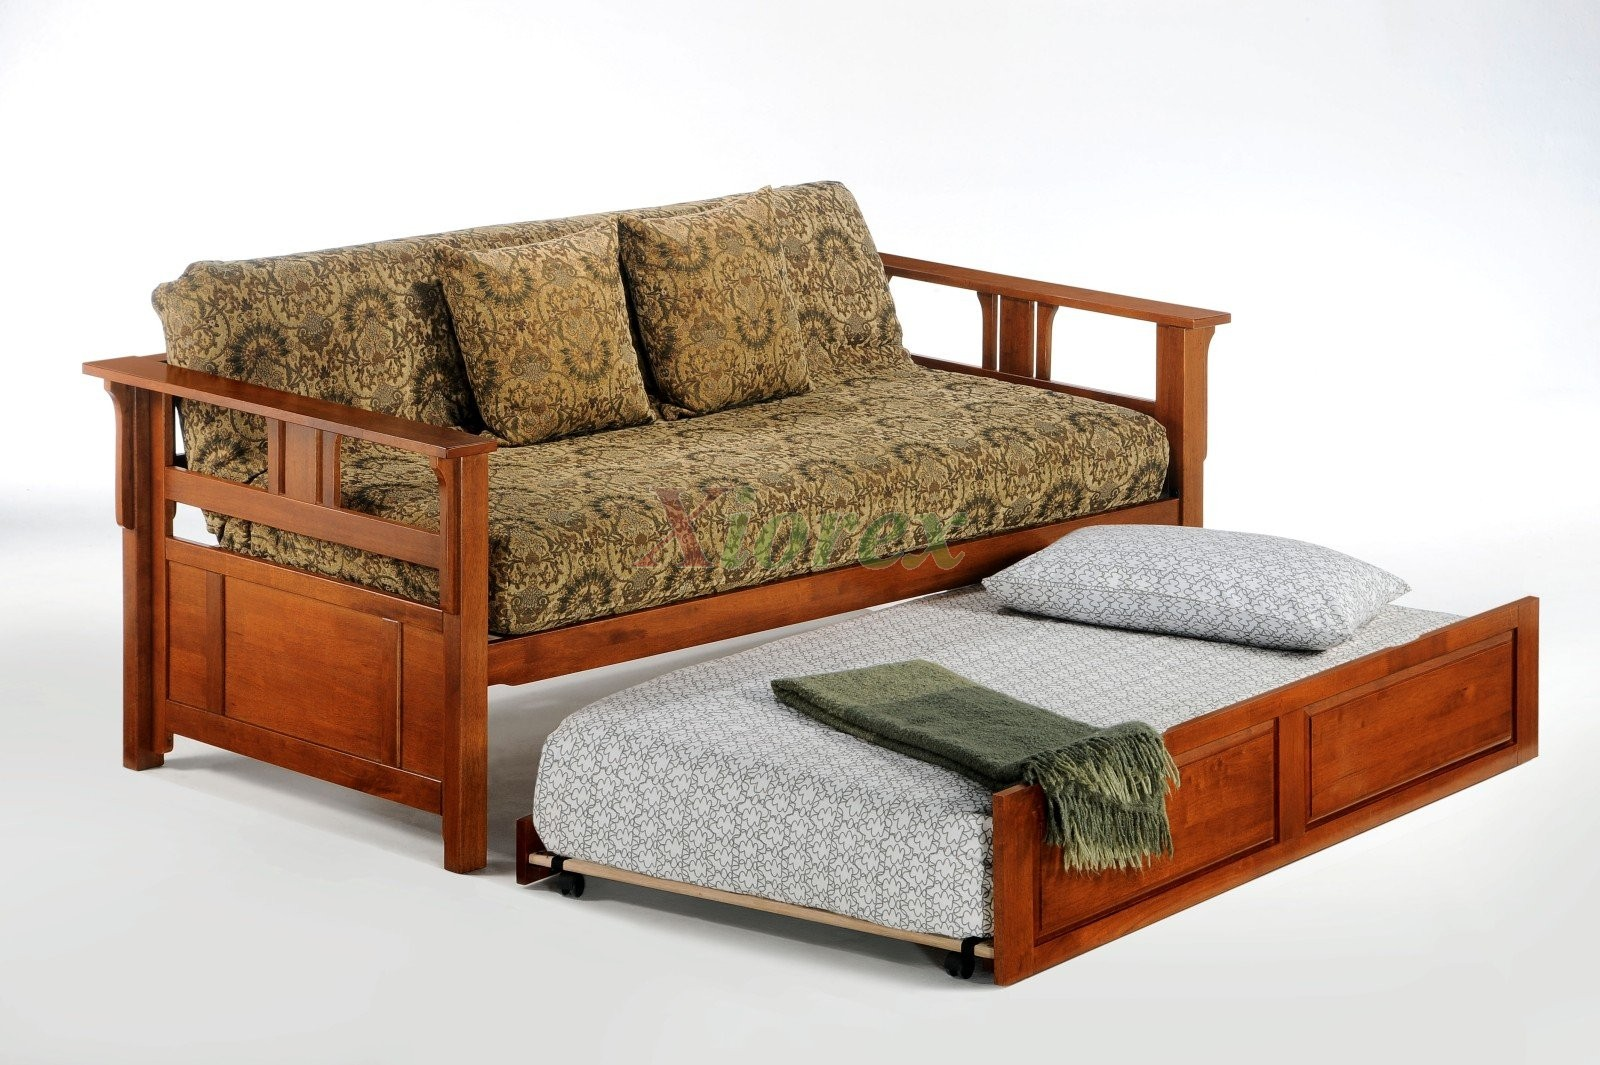 day and night furniture instructions